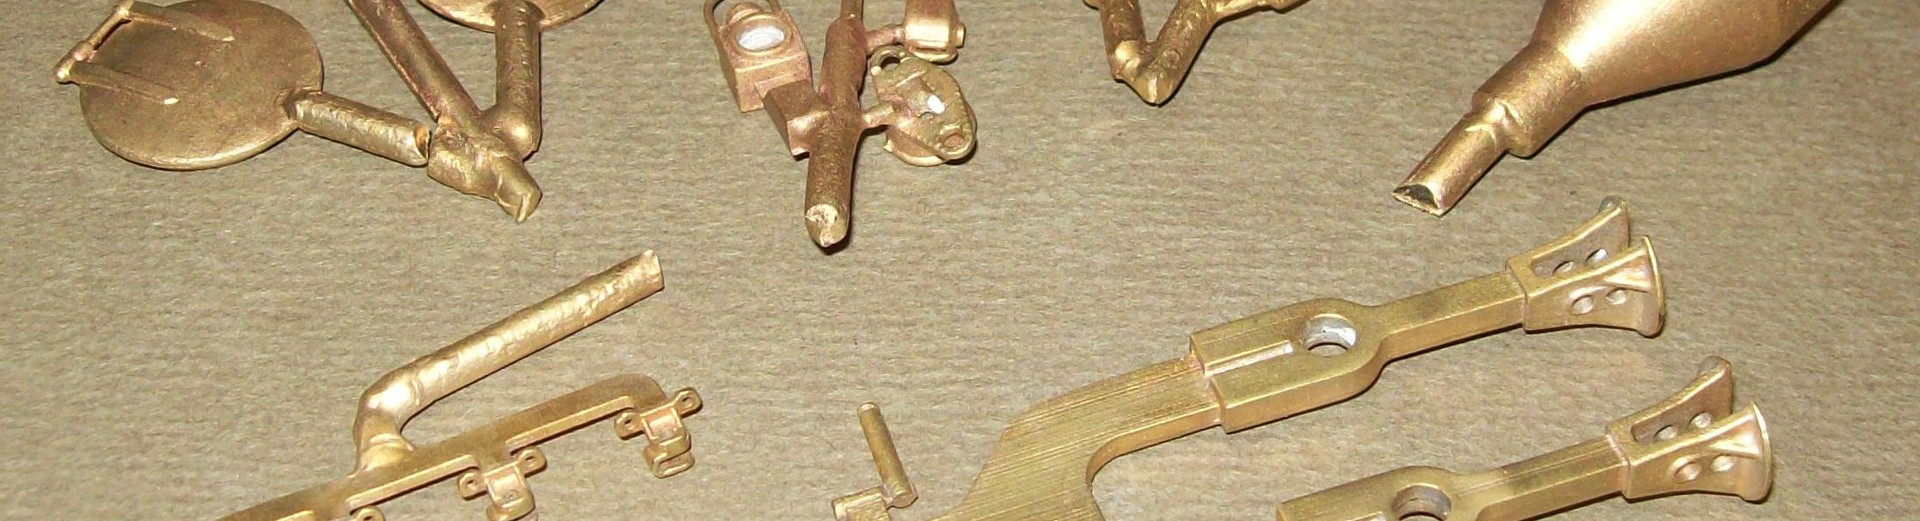 Brass castings made through our Rapid Prototyping process